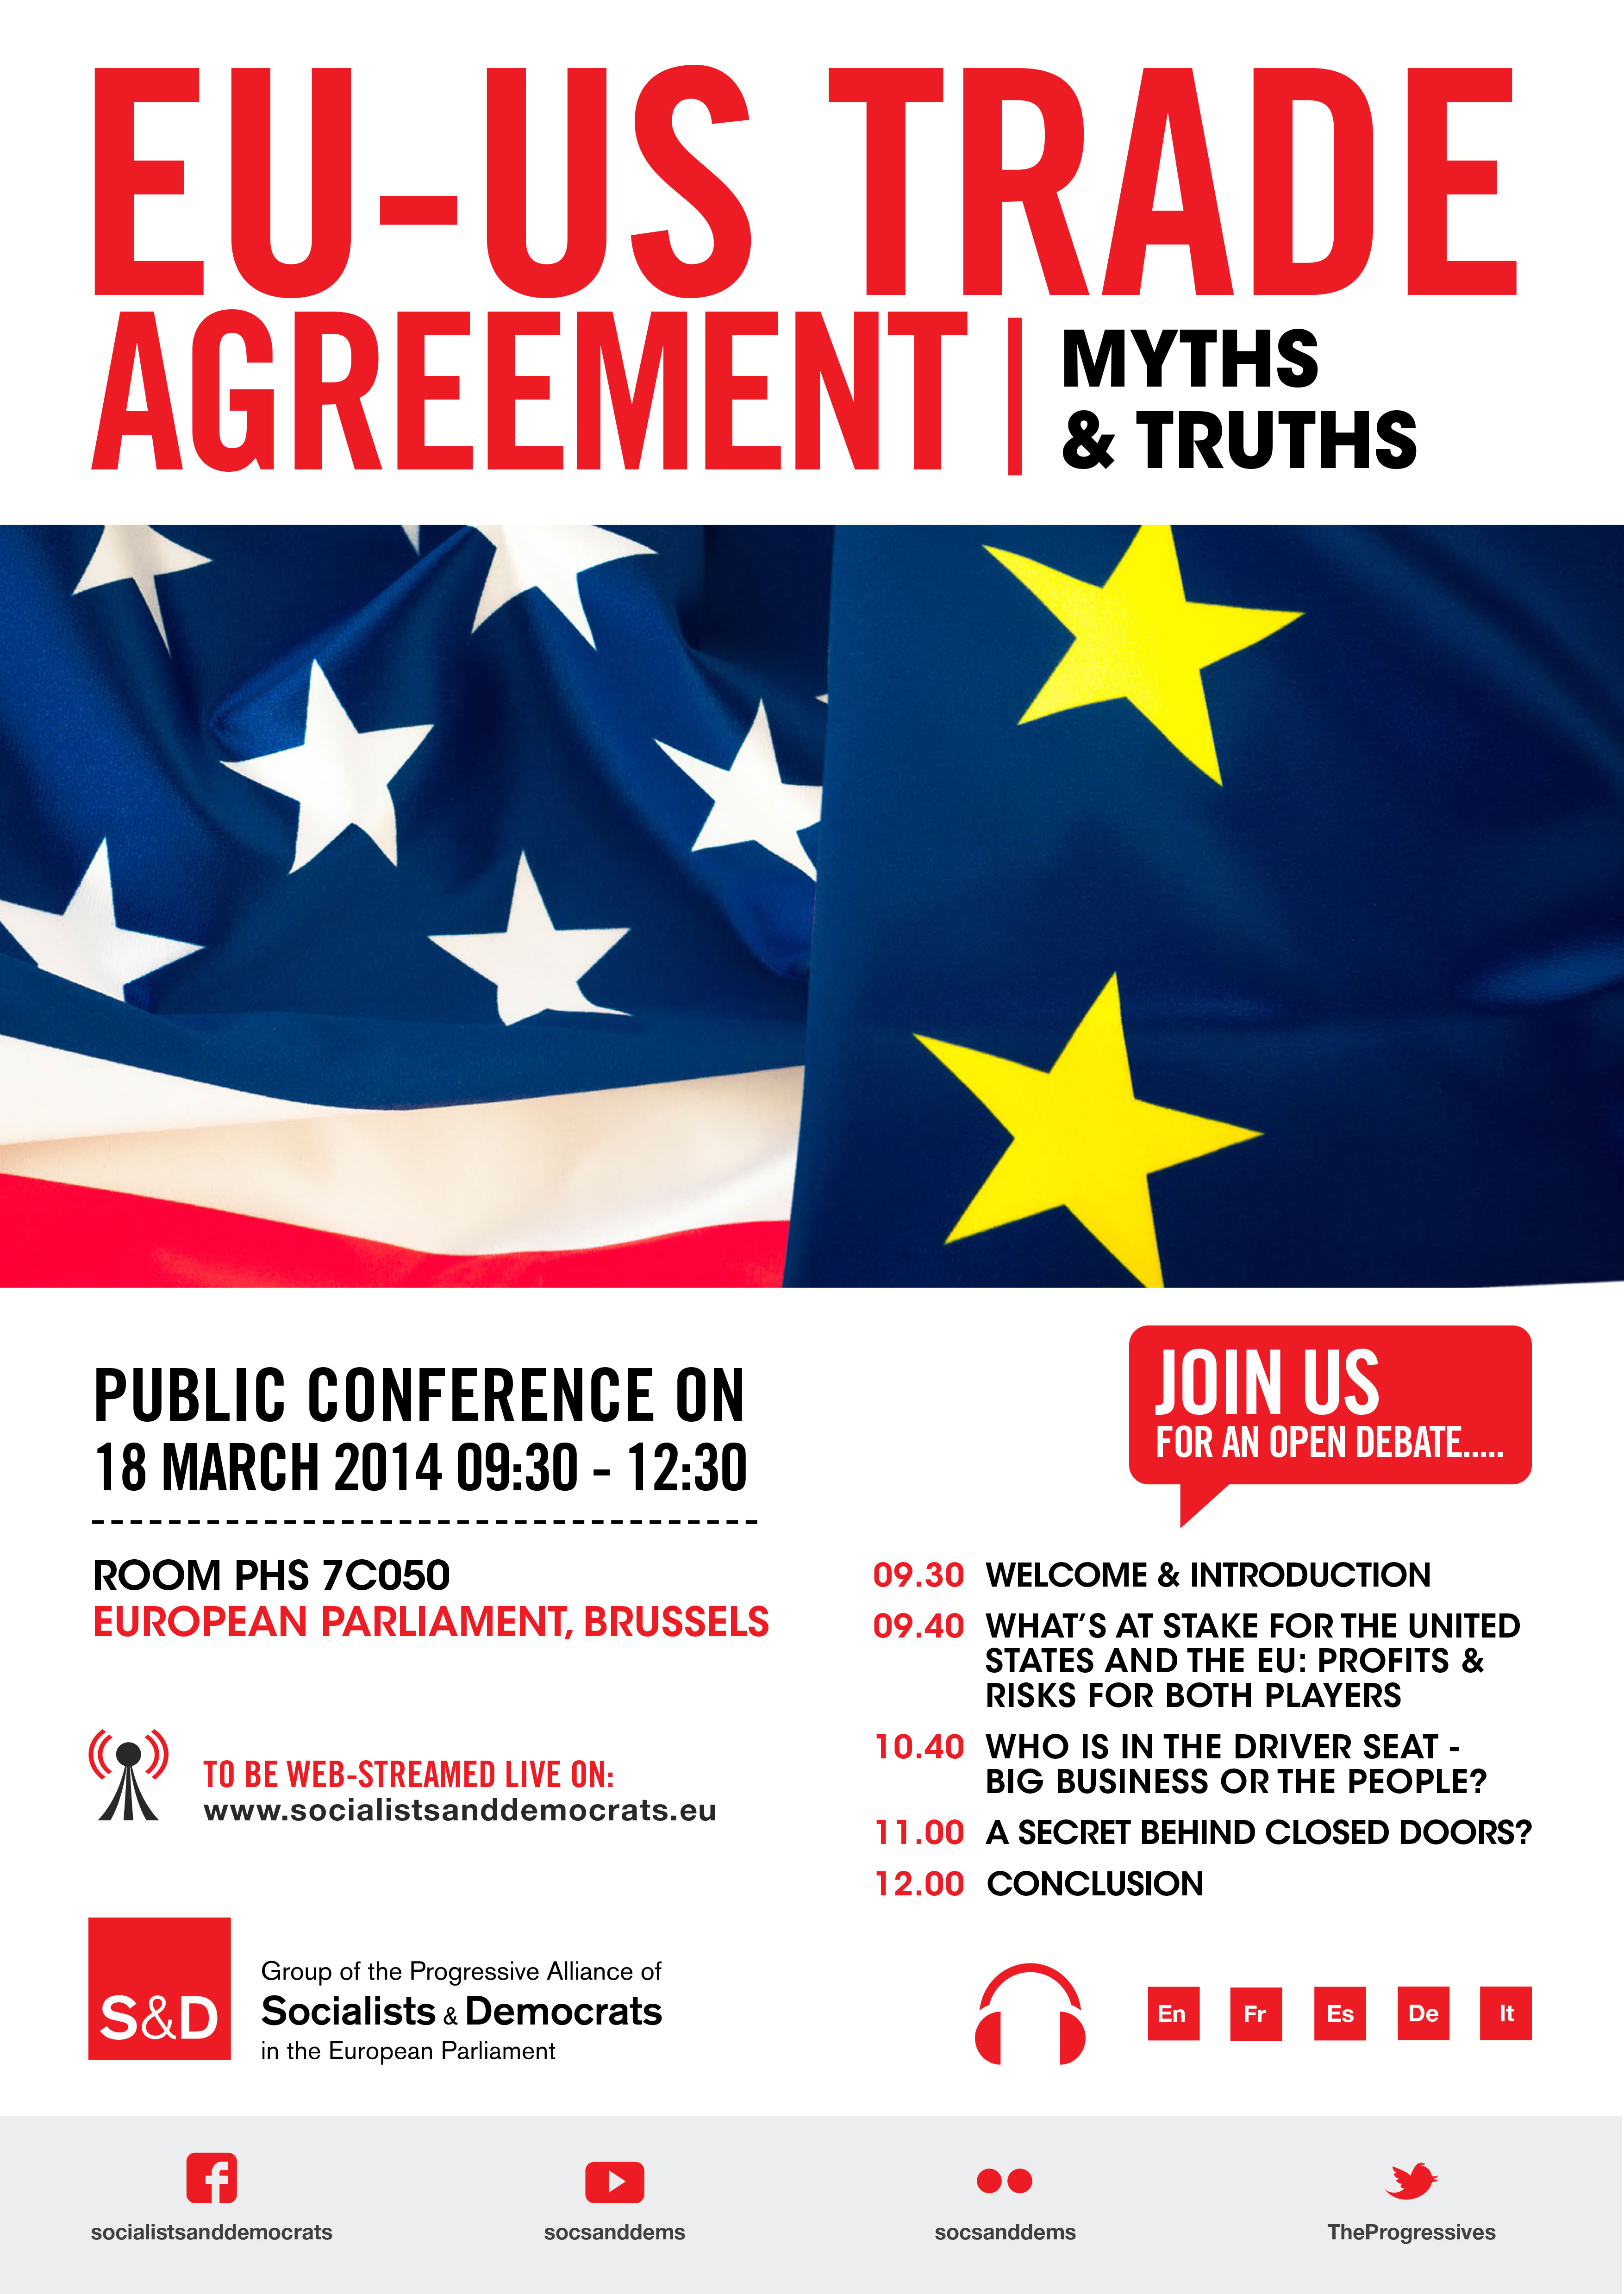 Sd Conference Eu Us Trade Agreement Myths And Truths